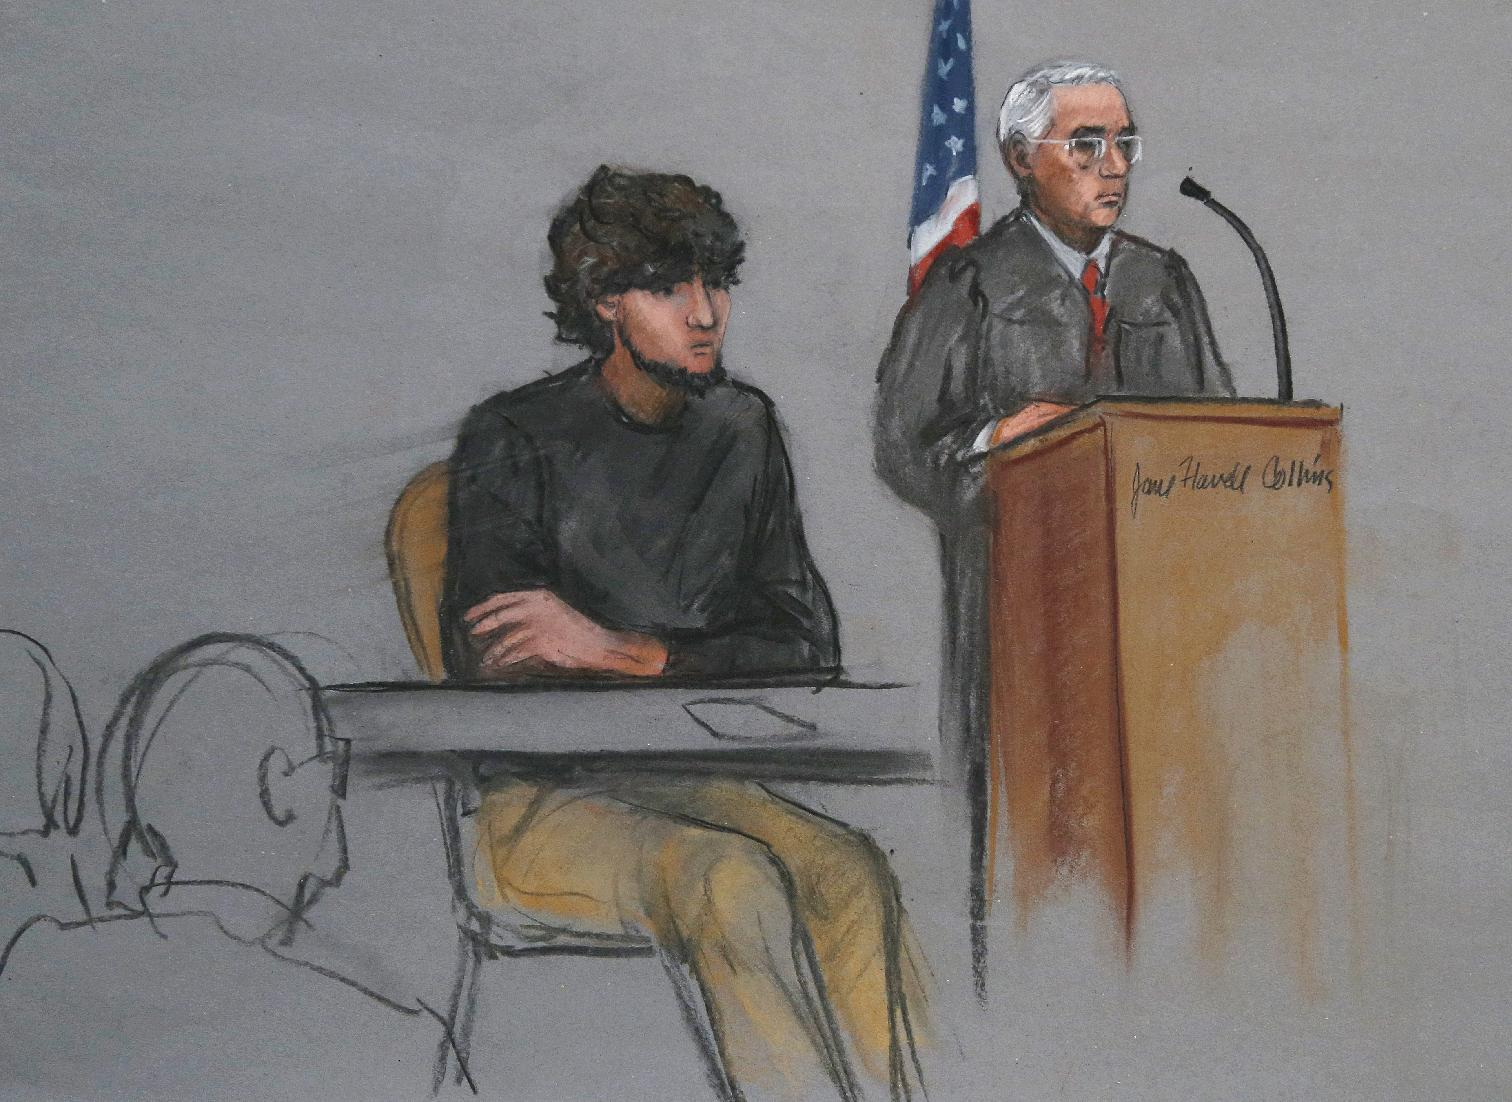 Opening statements in Boston Marathon bomber trial set for today